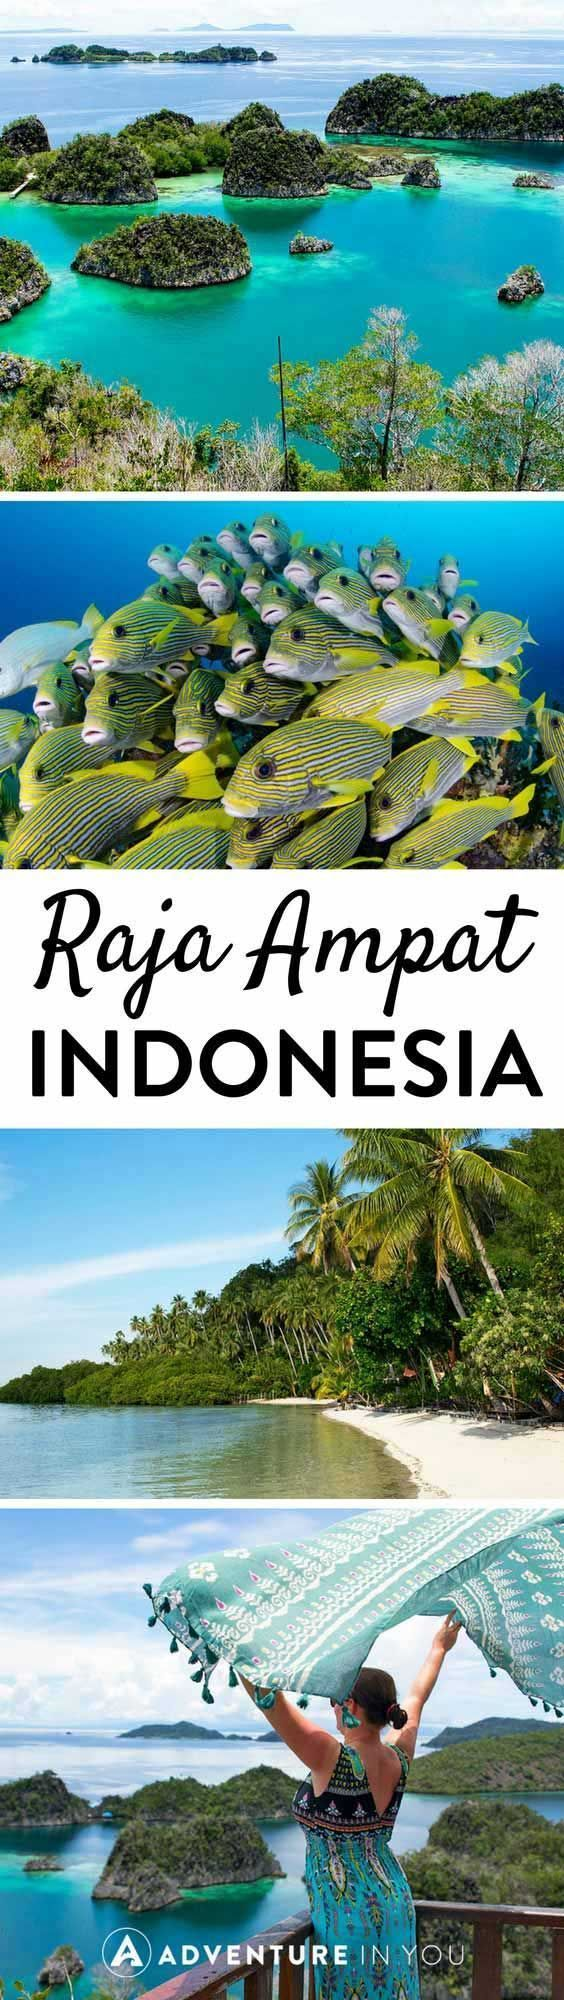 Ms De 25 Ideas Increbles Sobre Islas Raja Ampat En Pinterest